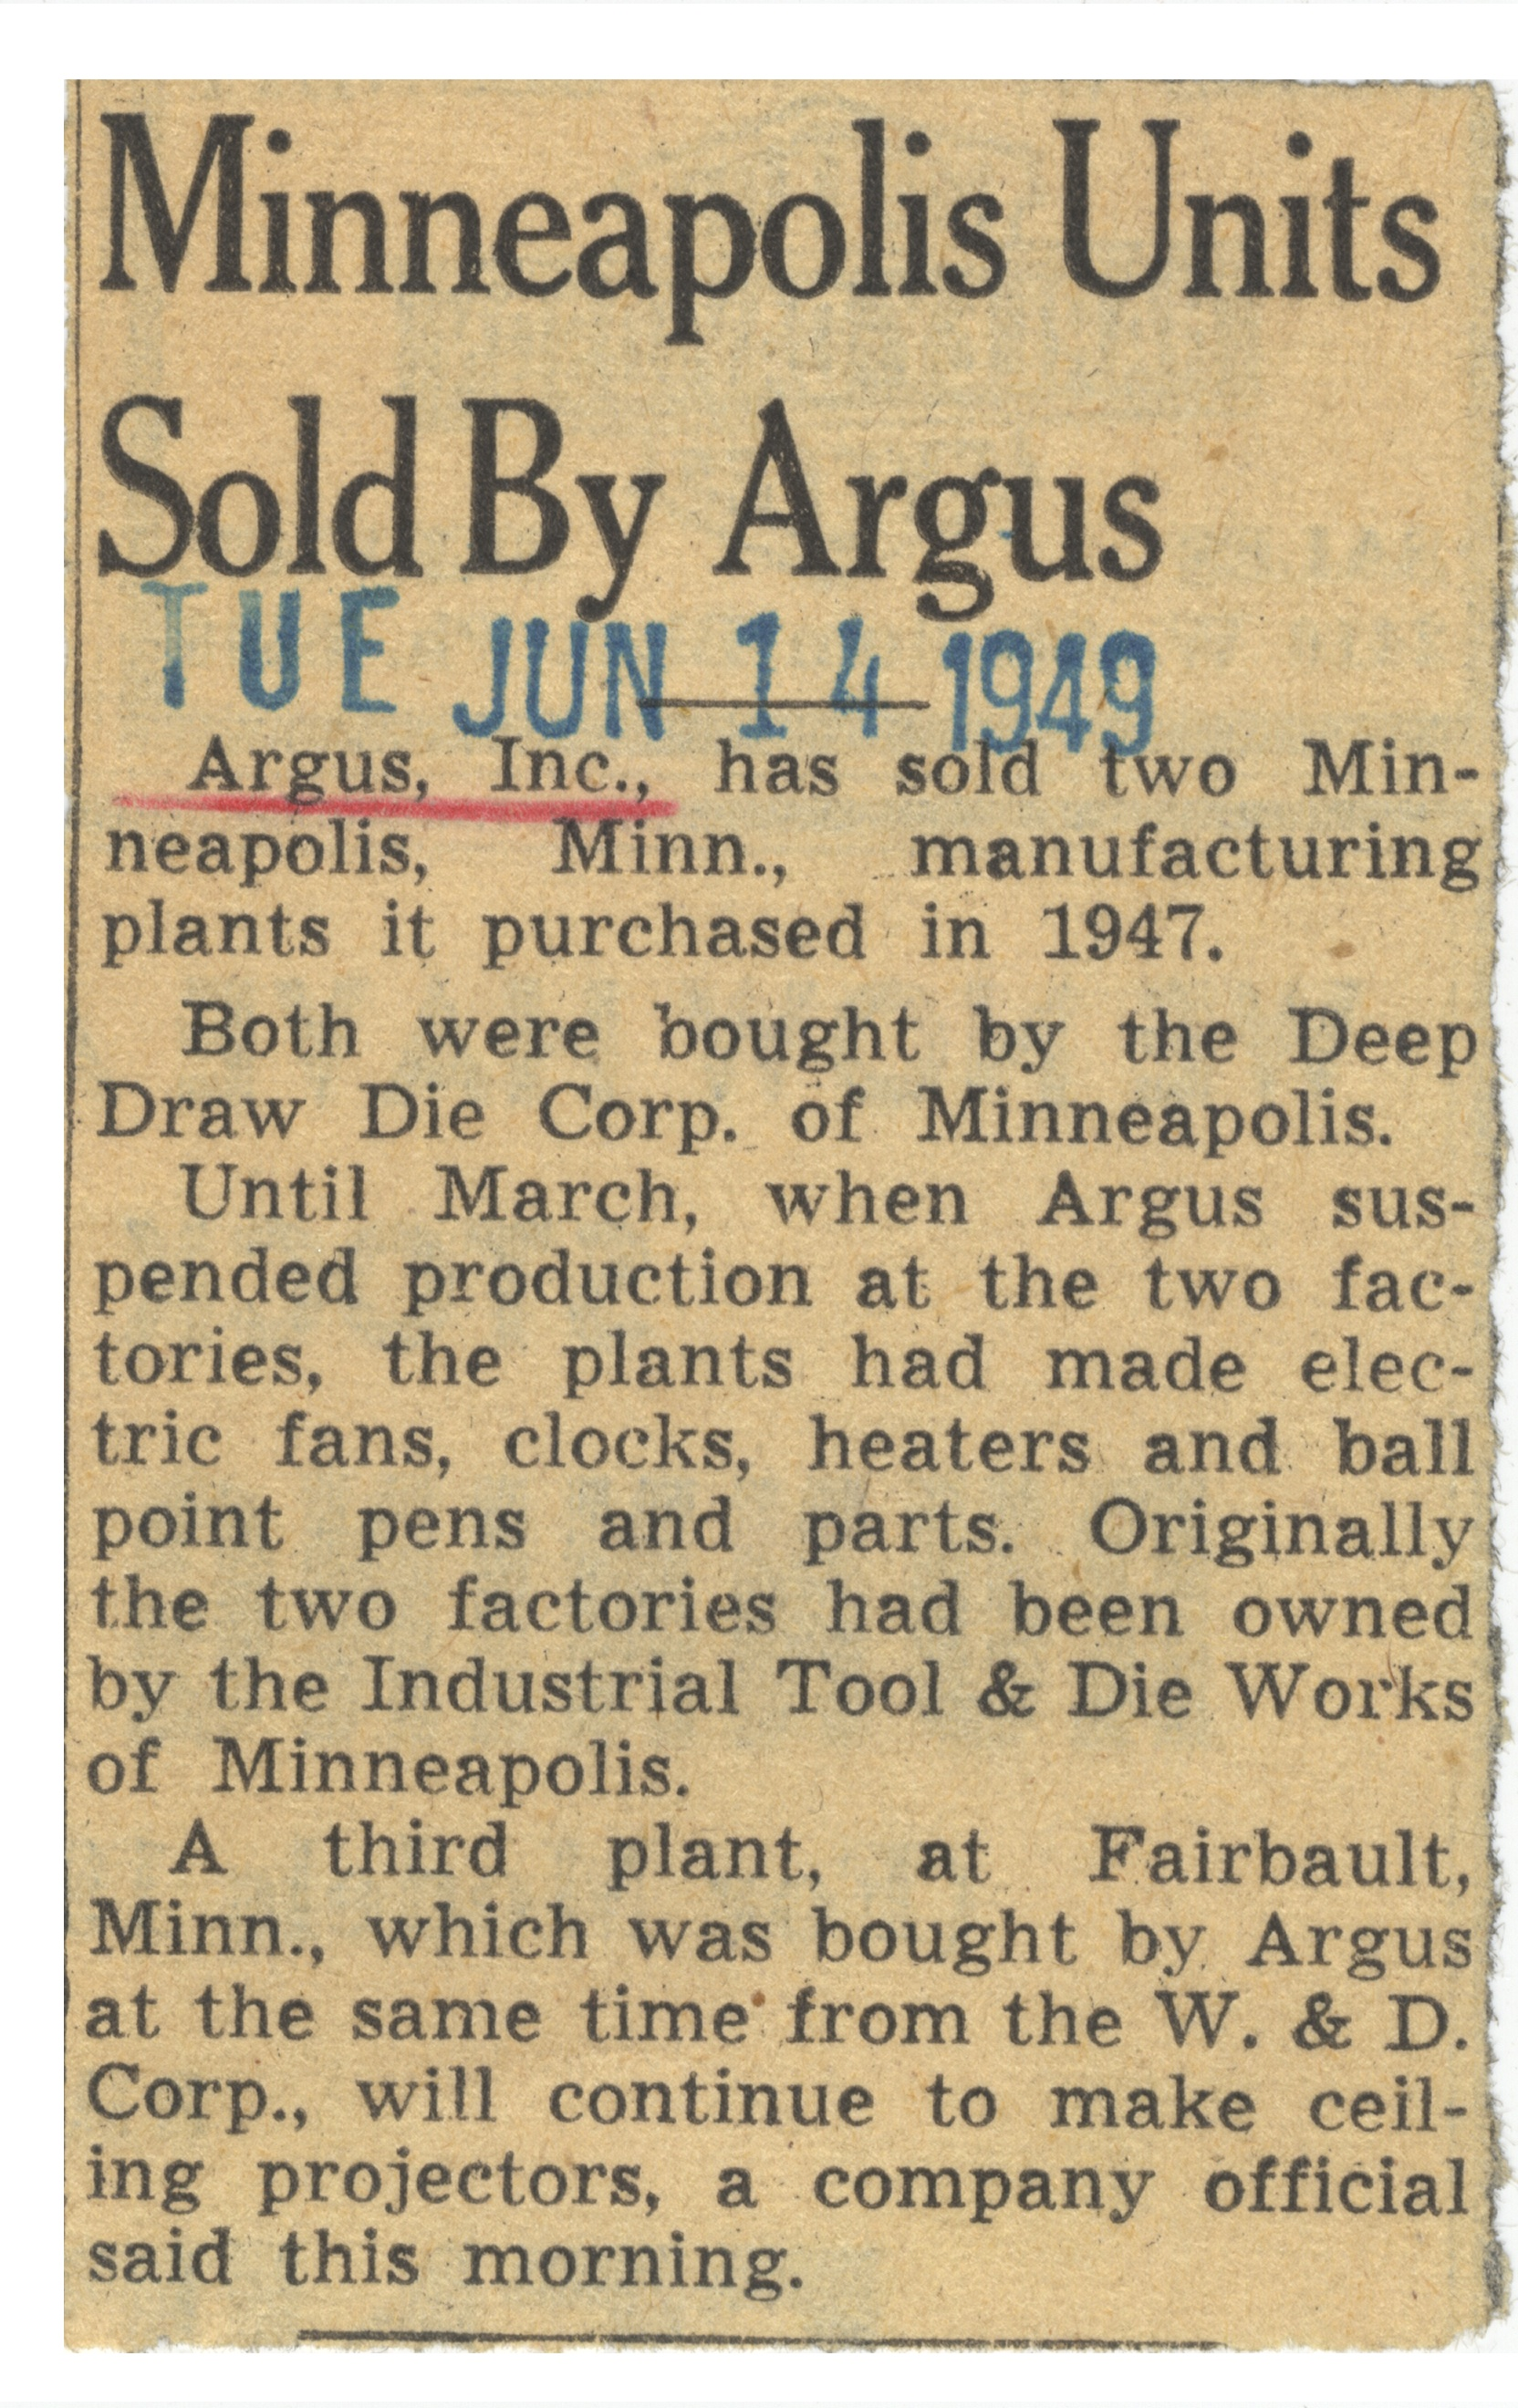 Minneapolis Units Sold By Argus image